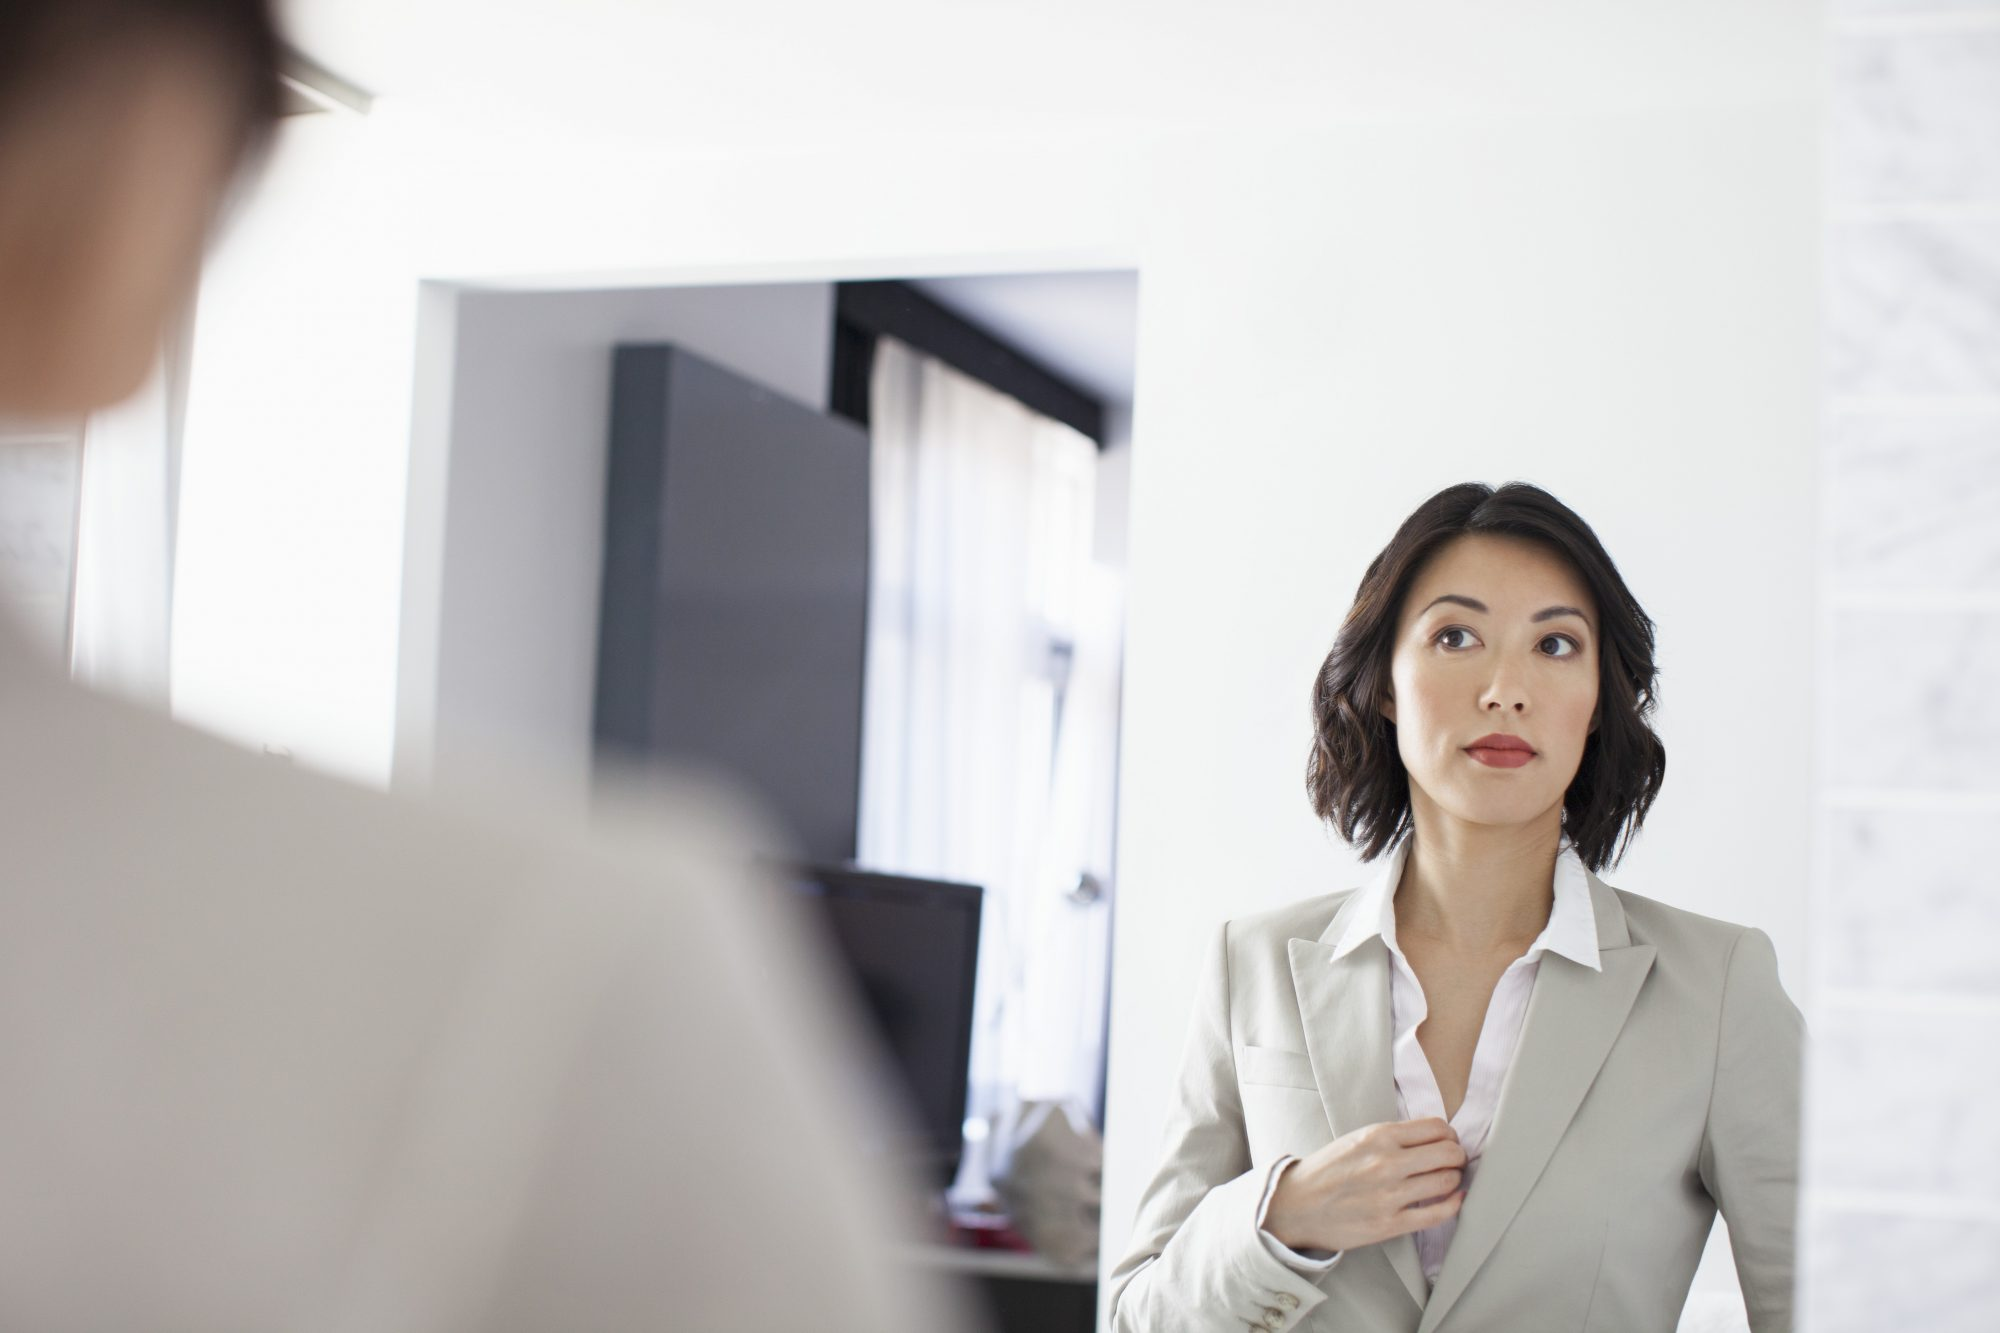 9 Tips for Managing Your Anxiety at Work (When You'd Rather Be Hiding in the Bathroom)